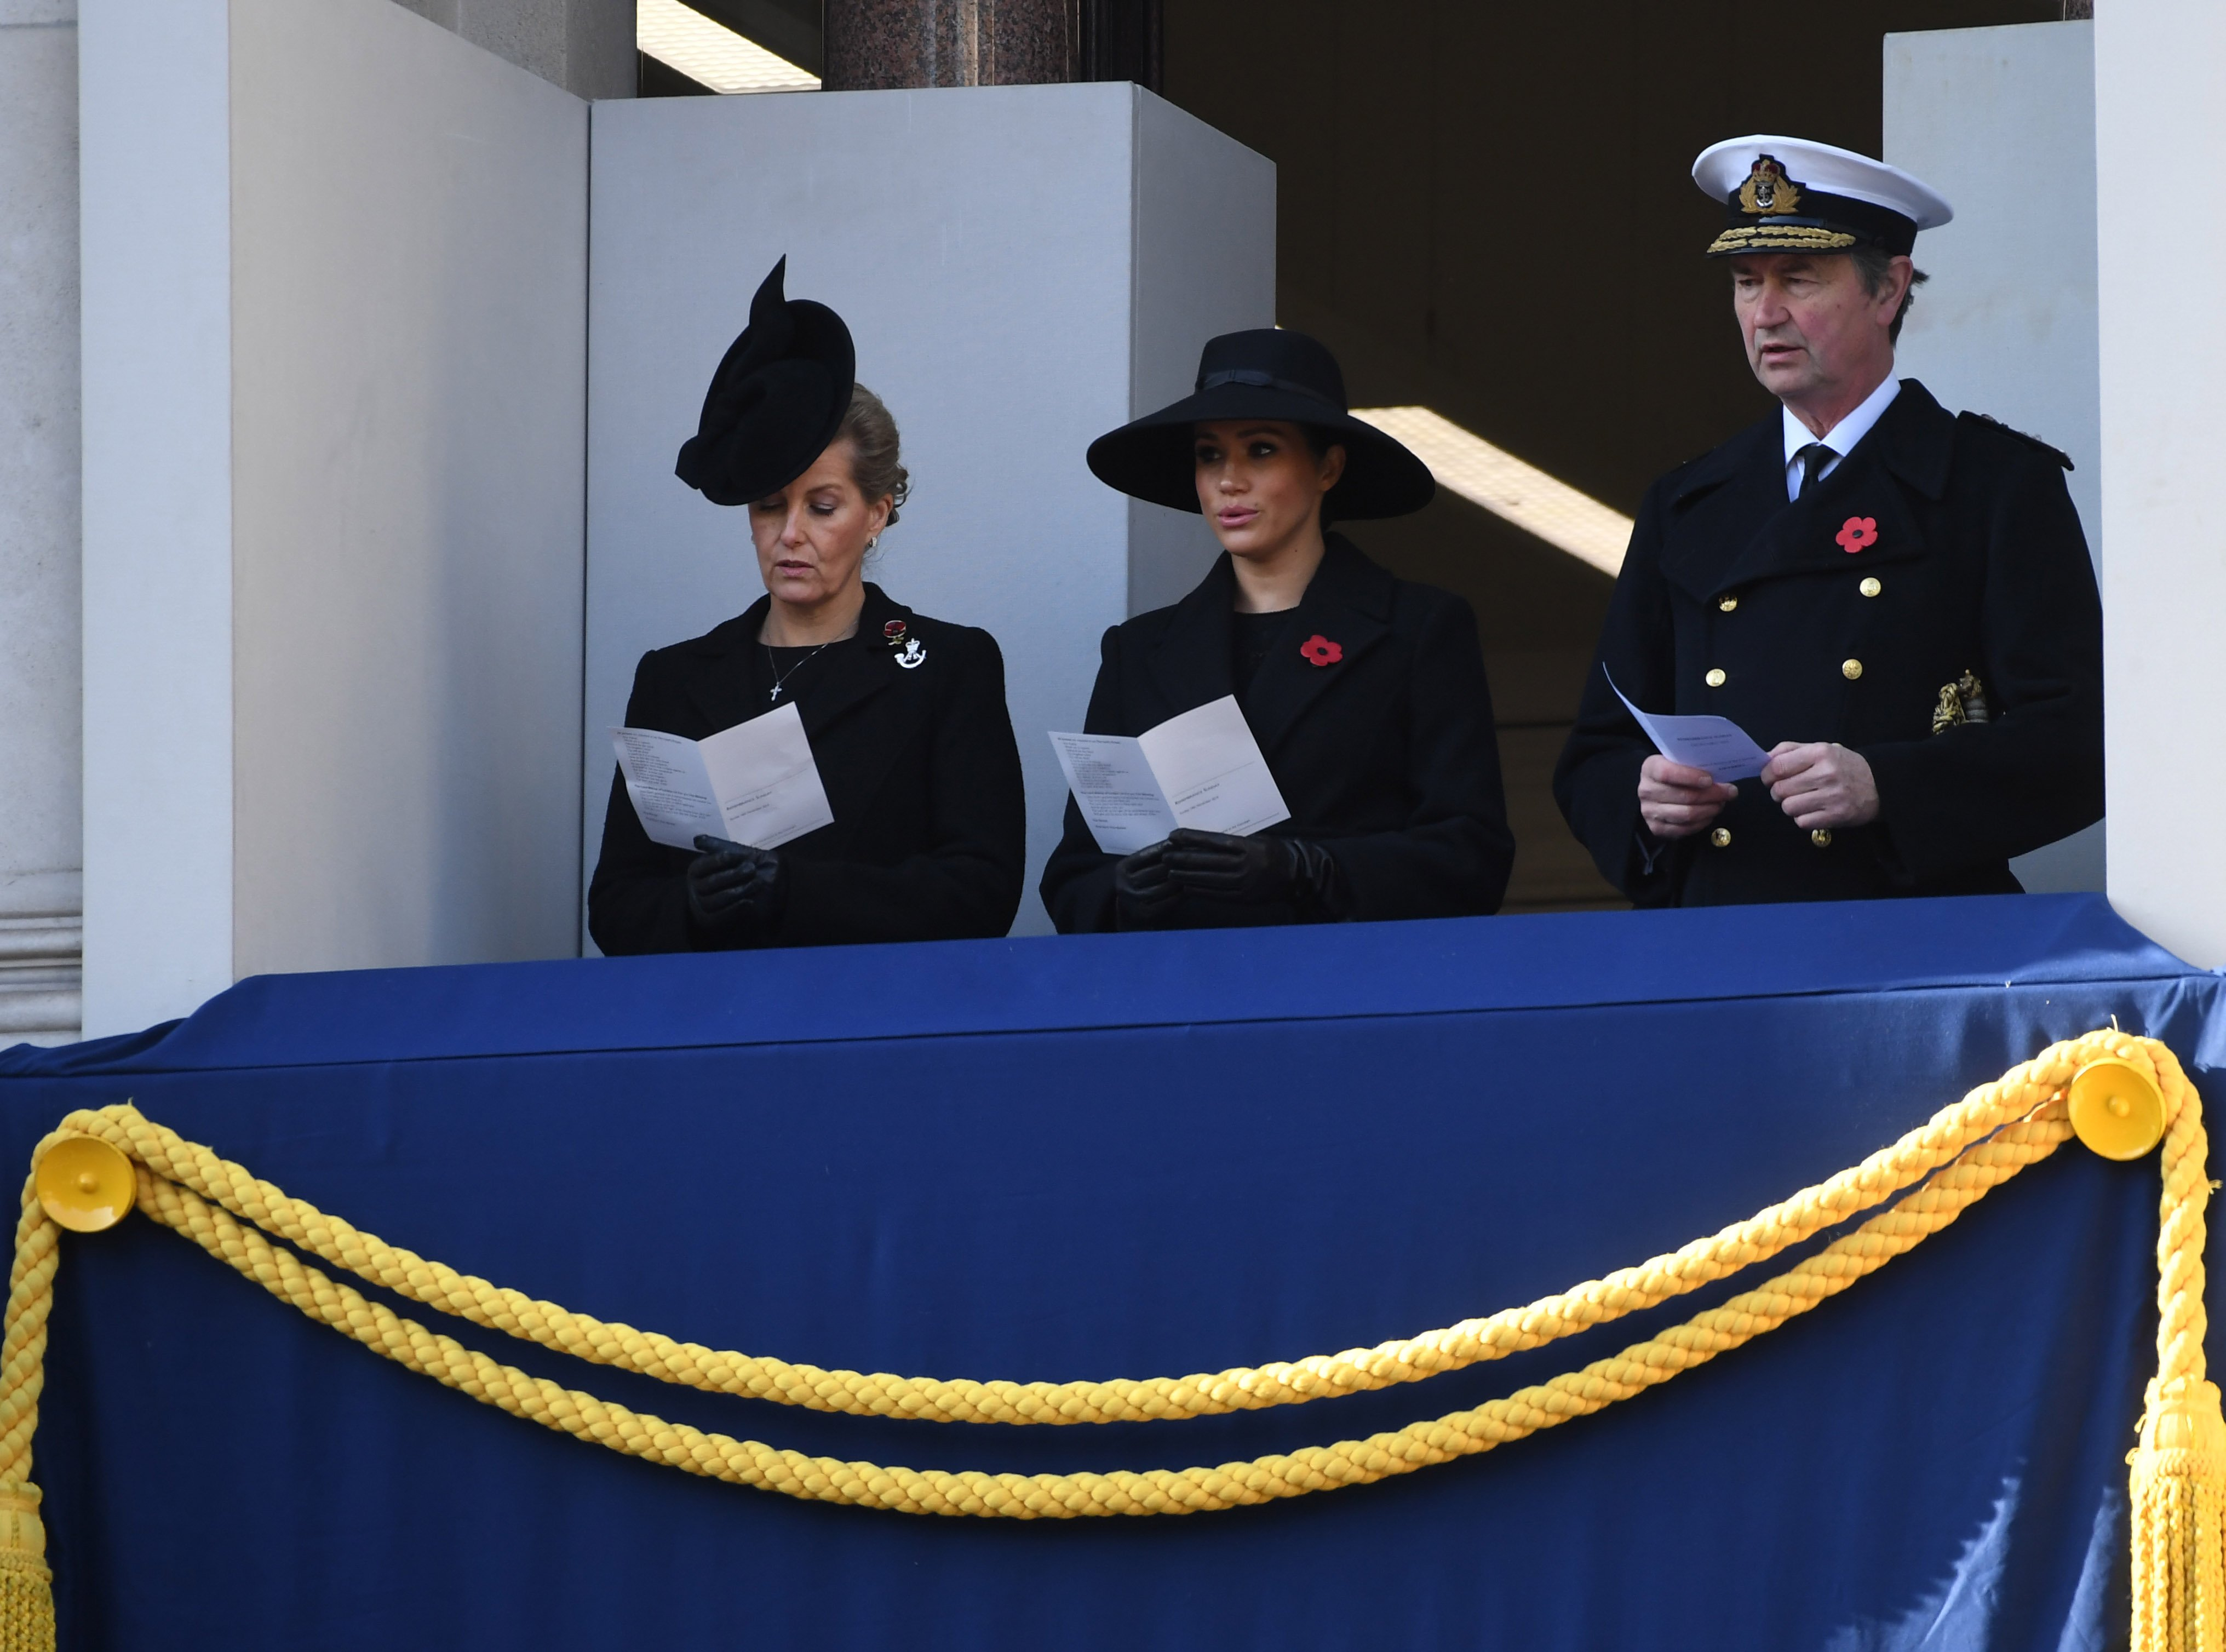 Sophie, Countess of Wessex, Meghan, Duchess of Sussex and Vice Admiral Sir Timothy Laurence attends the annual Remembrance Sunday memorial at The Cenotaph on November 10, 2019, in London, England. | Source: Getty Images.